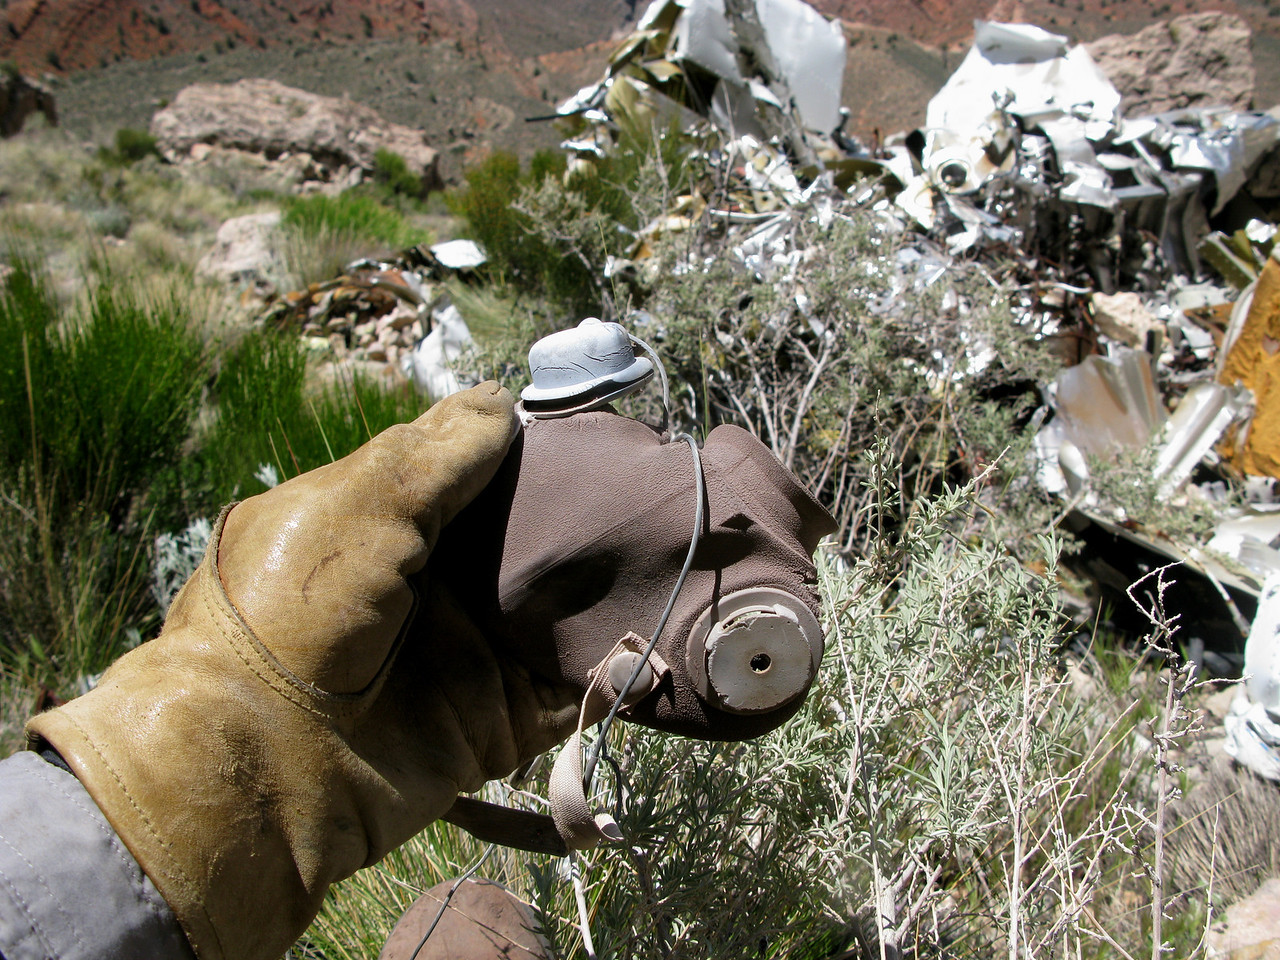 This mask was part of aircraft's installed oxygen system.